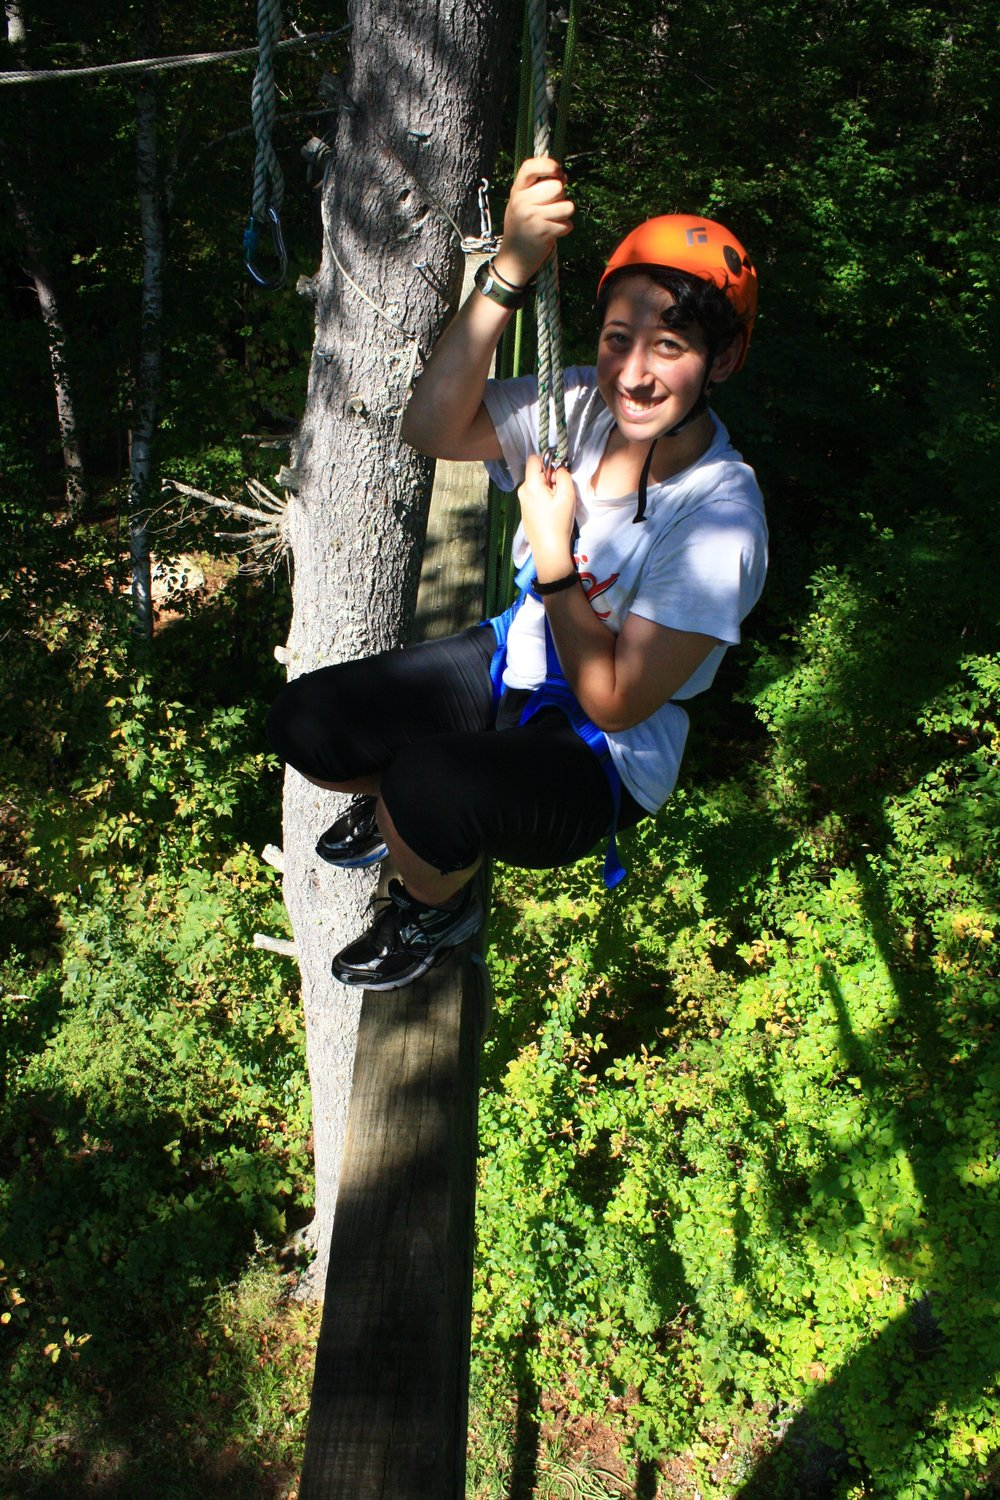 Xander up high in the trees on the ropes course